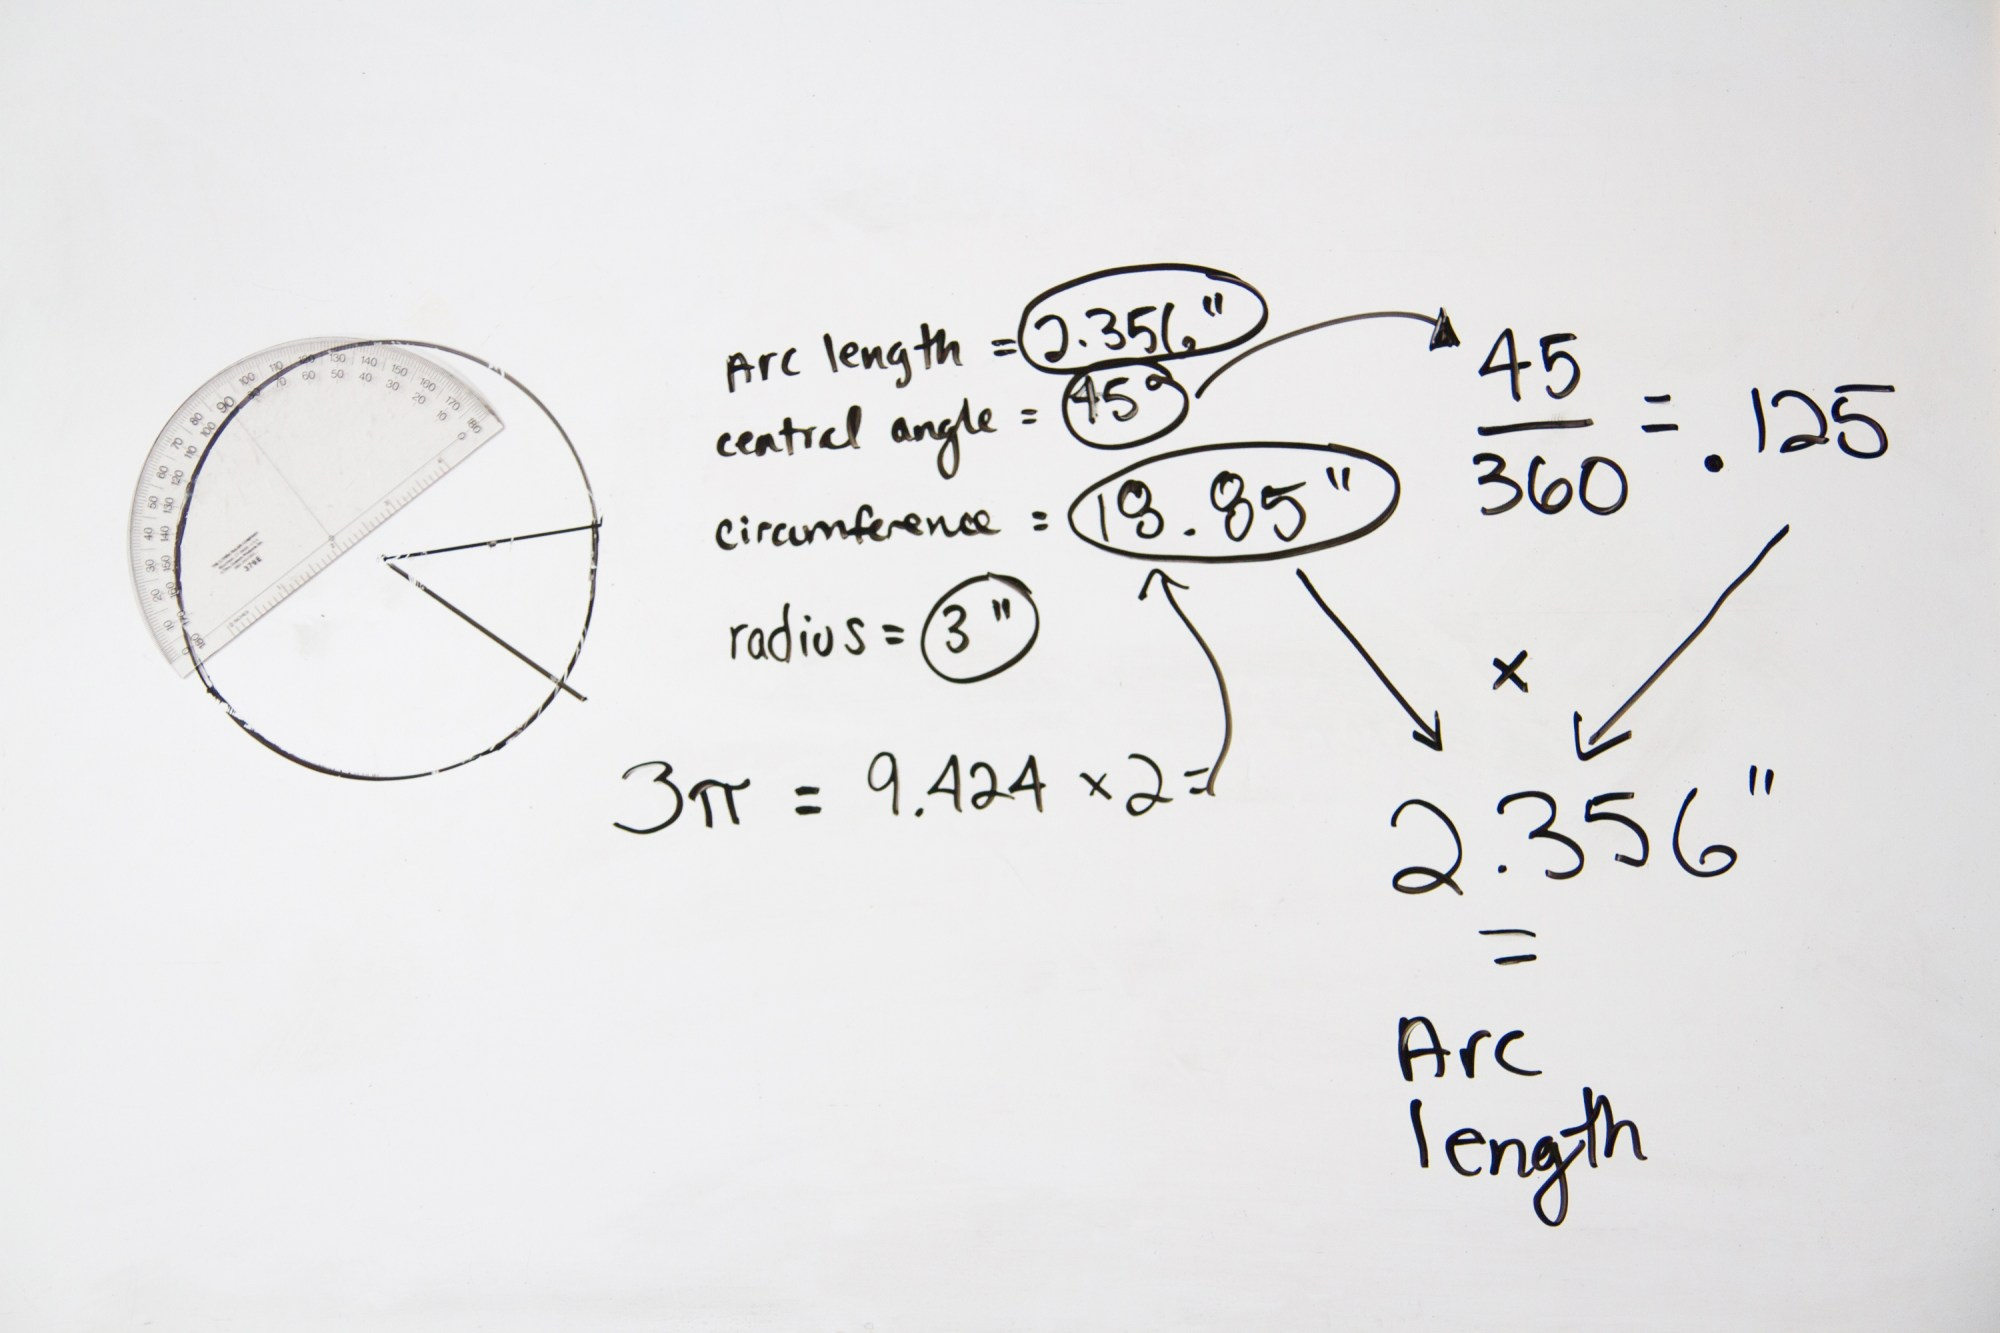 hight resolution of tape diagram to find percent